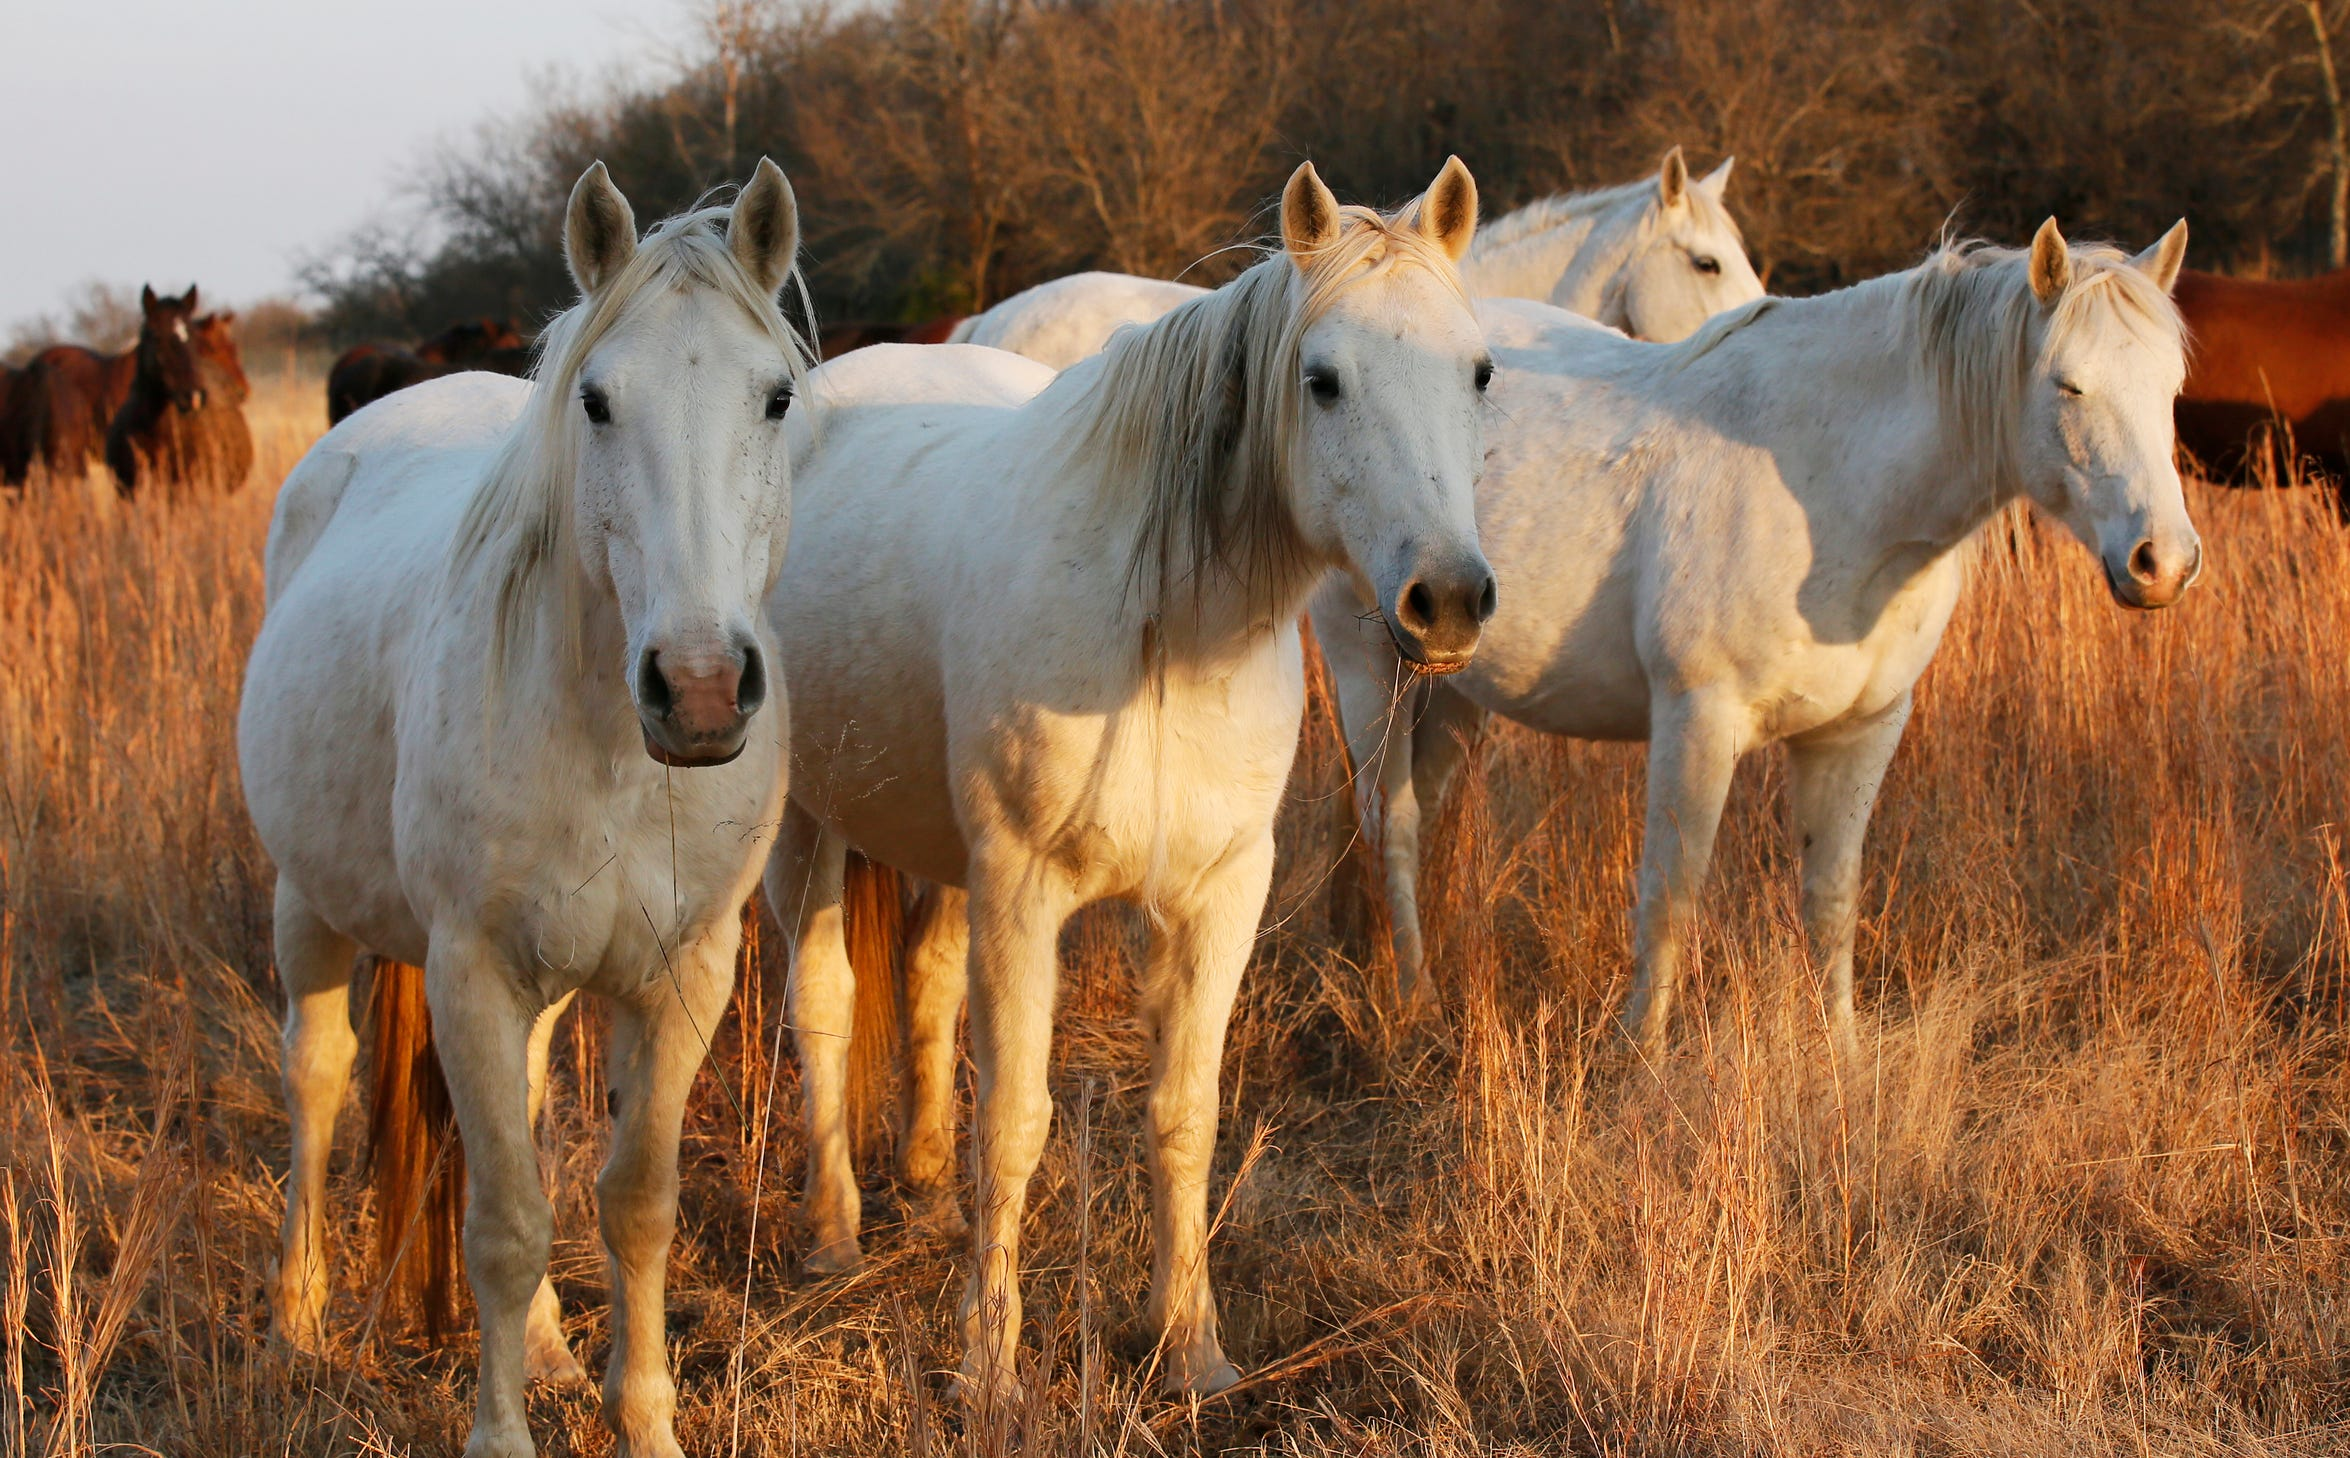 In this Dec. 13, 2017 file photo wild horses gather in a pasture at sunset at the Mowdy Ranch Ecosanctuary near Coalgate, Okla.